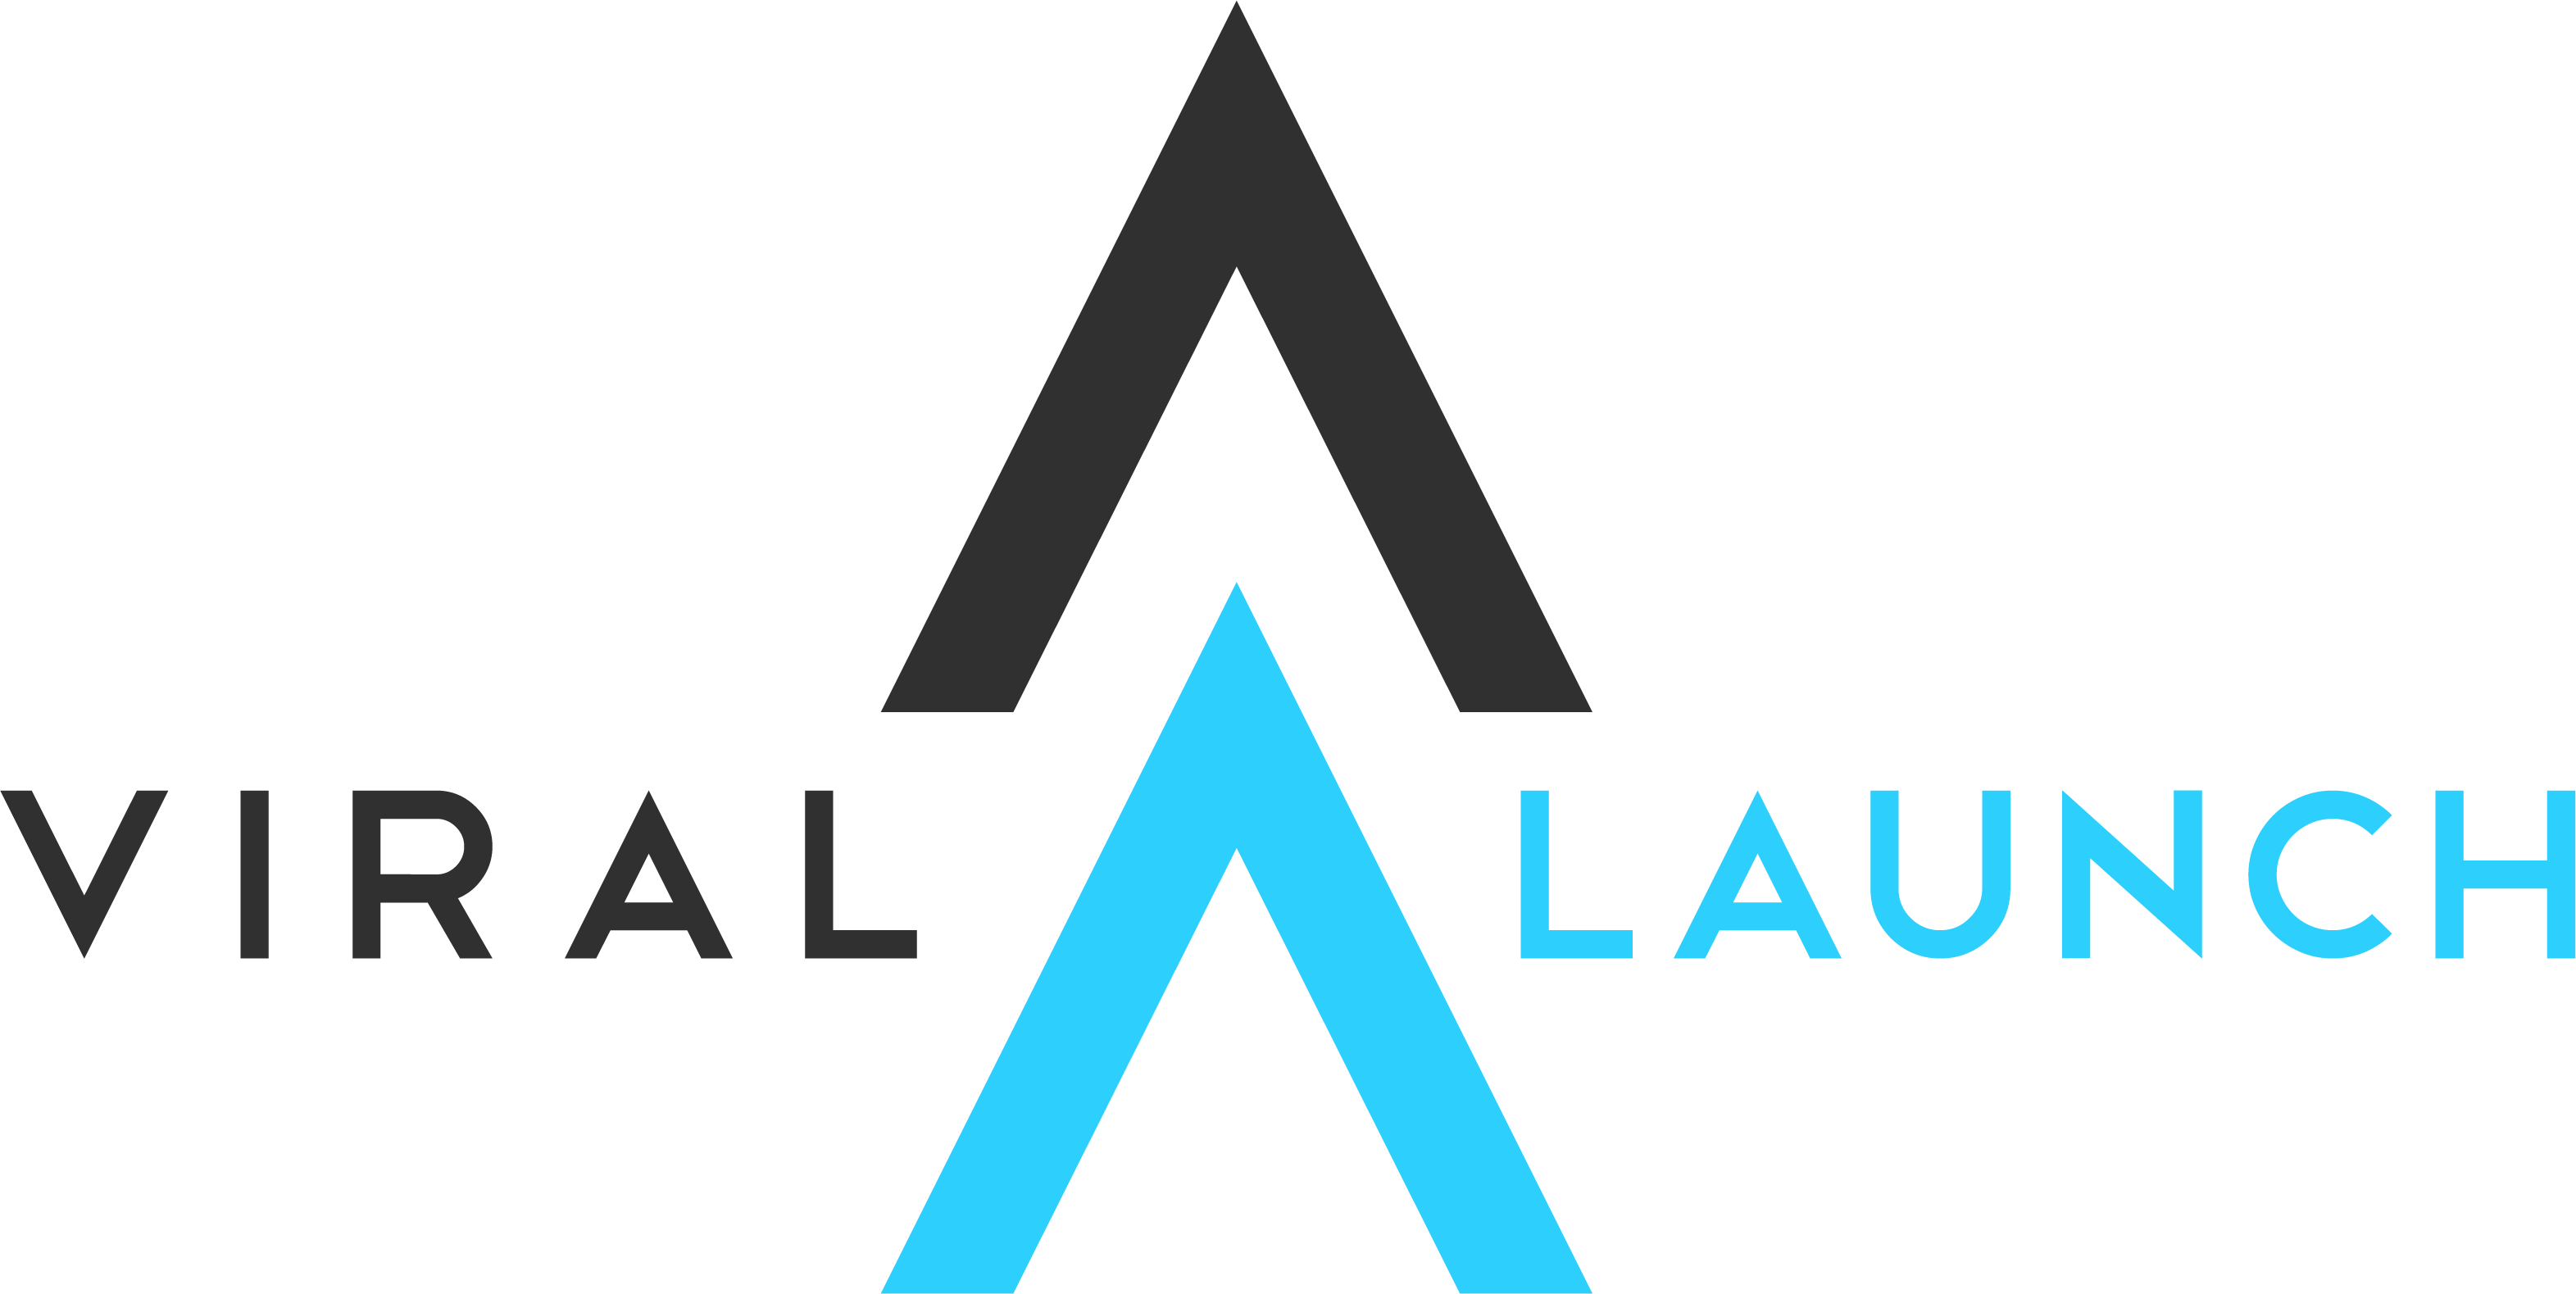 15% OFF VIRAL LAUNCH FOR LIFE